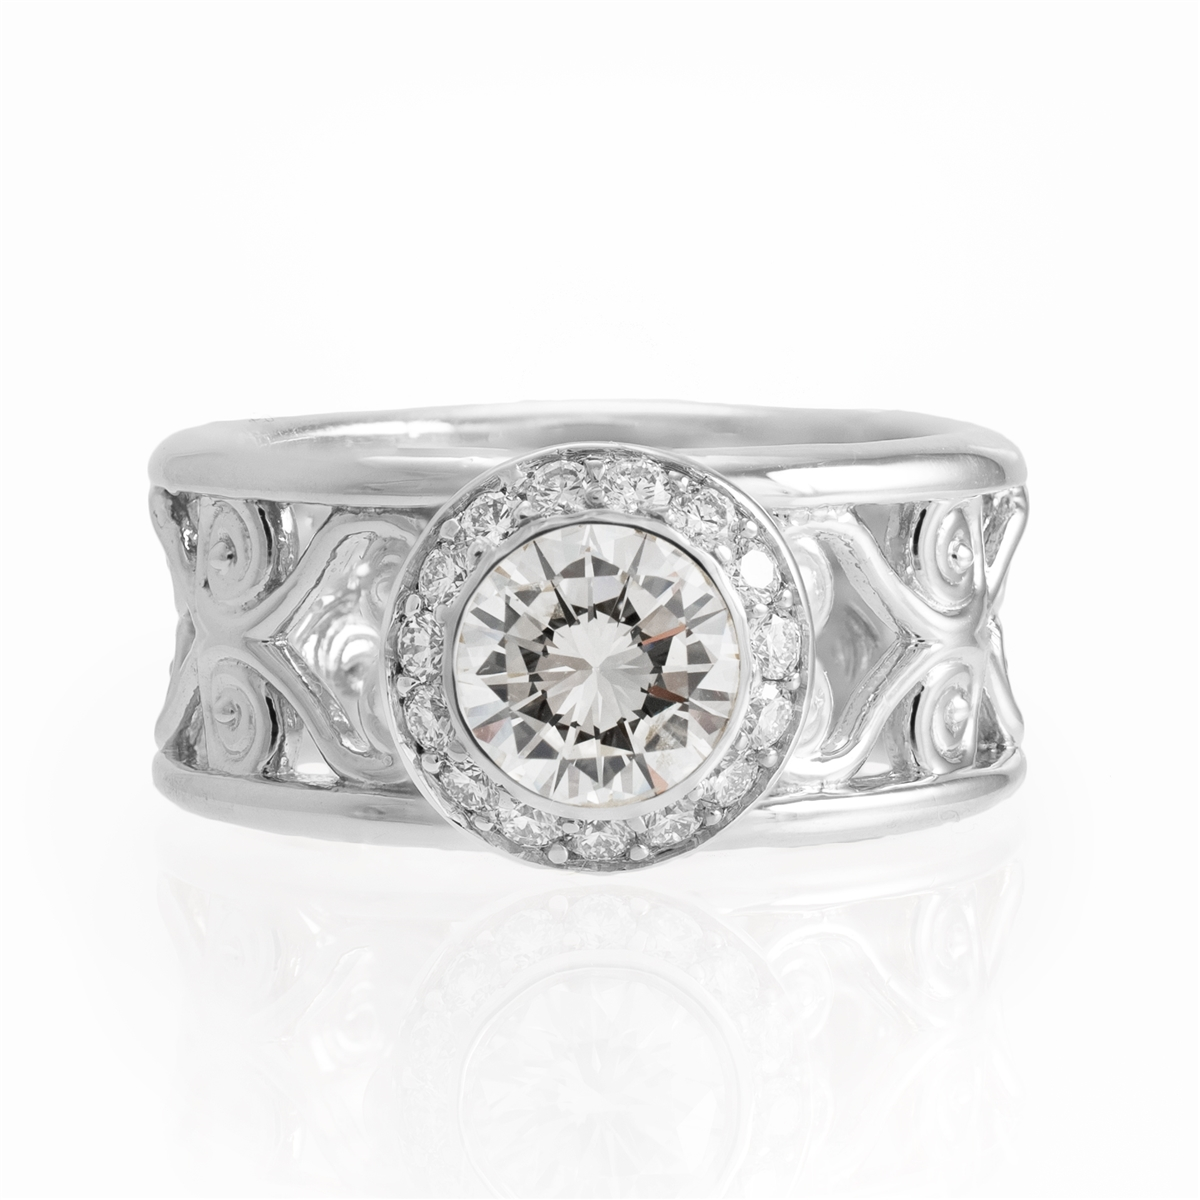 J Briggs & Co Filigree Wide Band Halo Diamond Ring